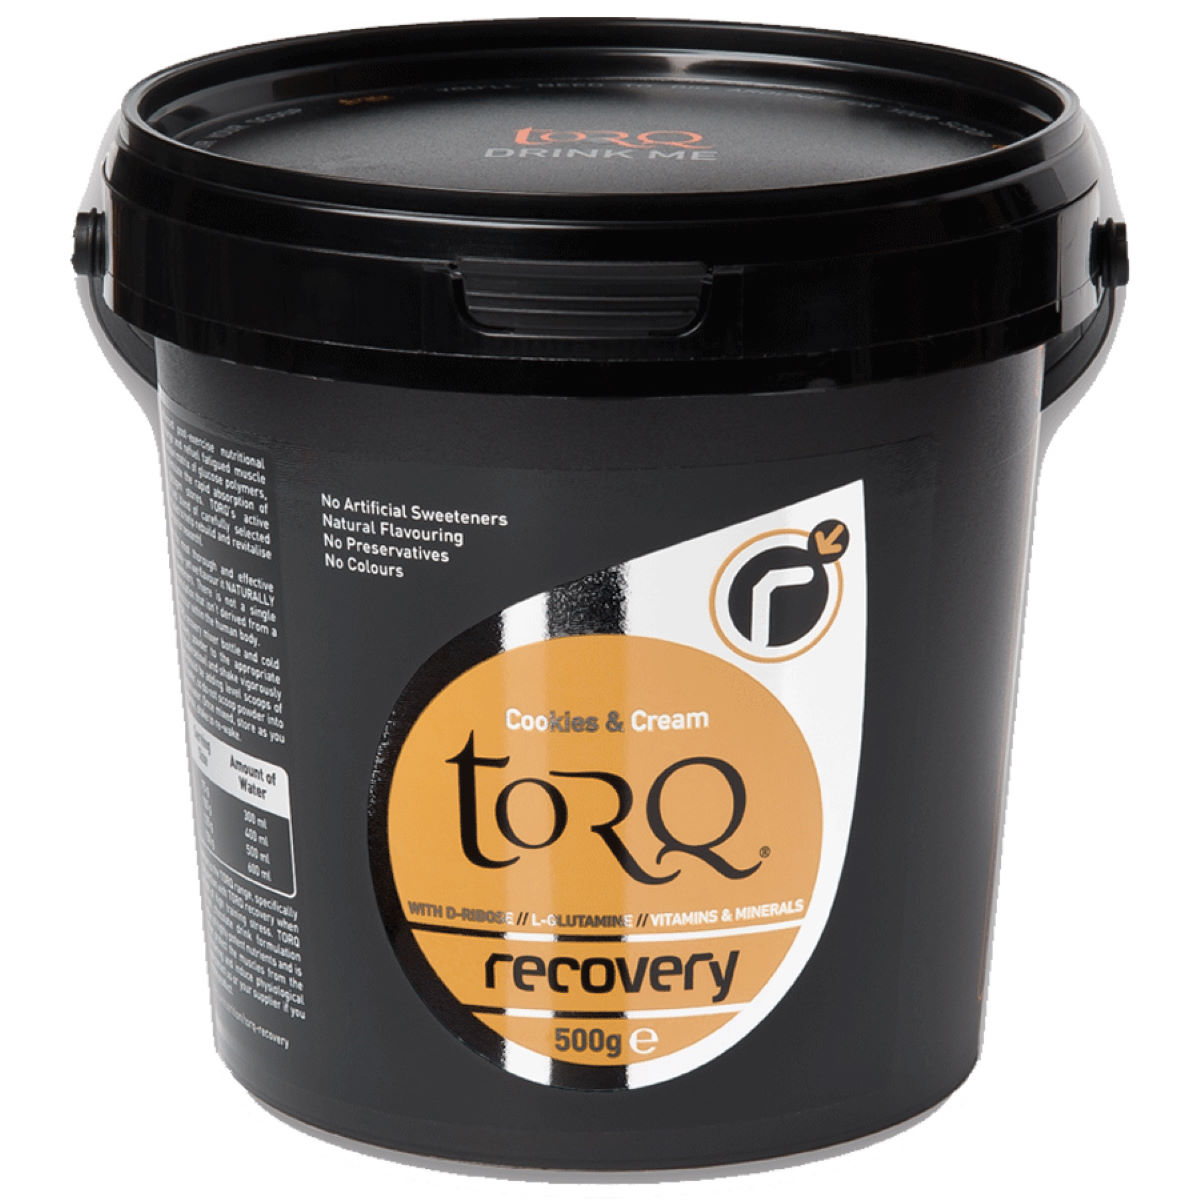 Image of Boisson de récupération Torq (500 g) - 500g Cookies and Cream